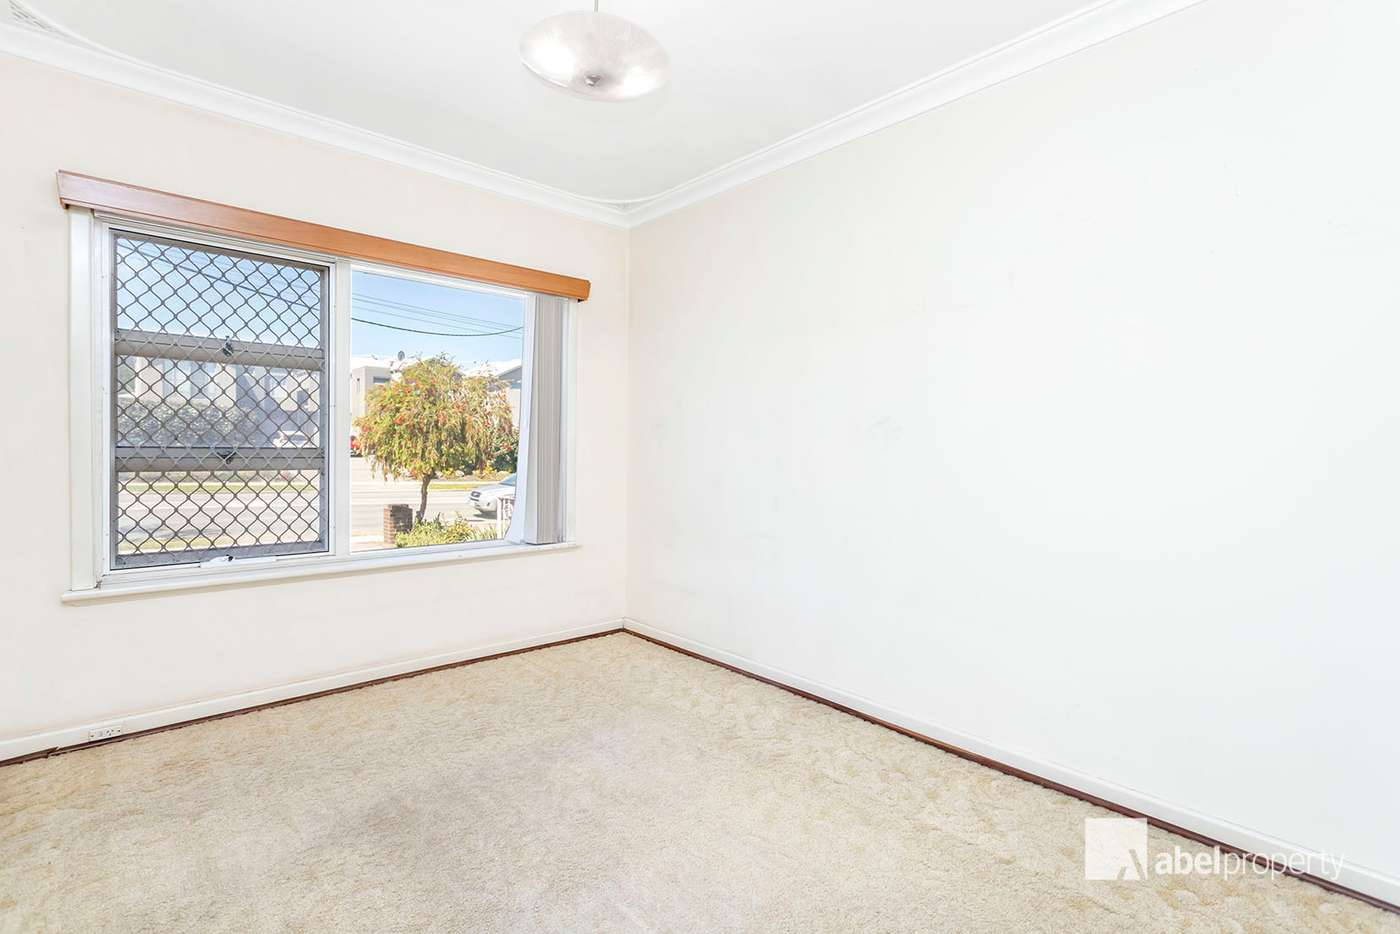 Seventh view of Homely house listing, 245 Charles Street, North Perth WA 6006